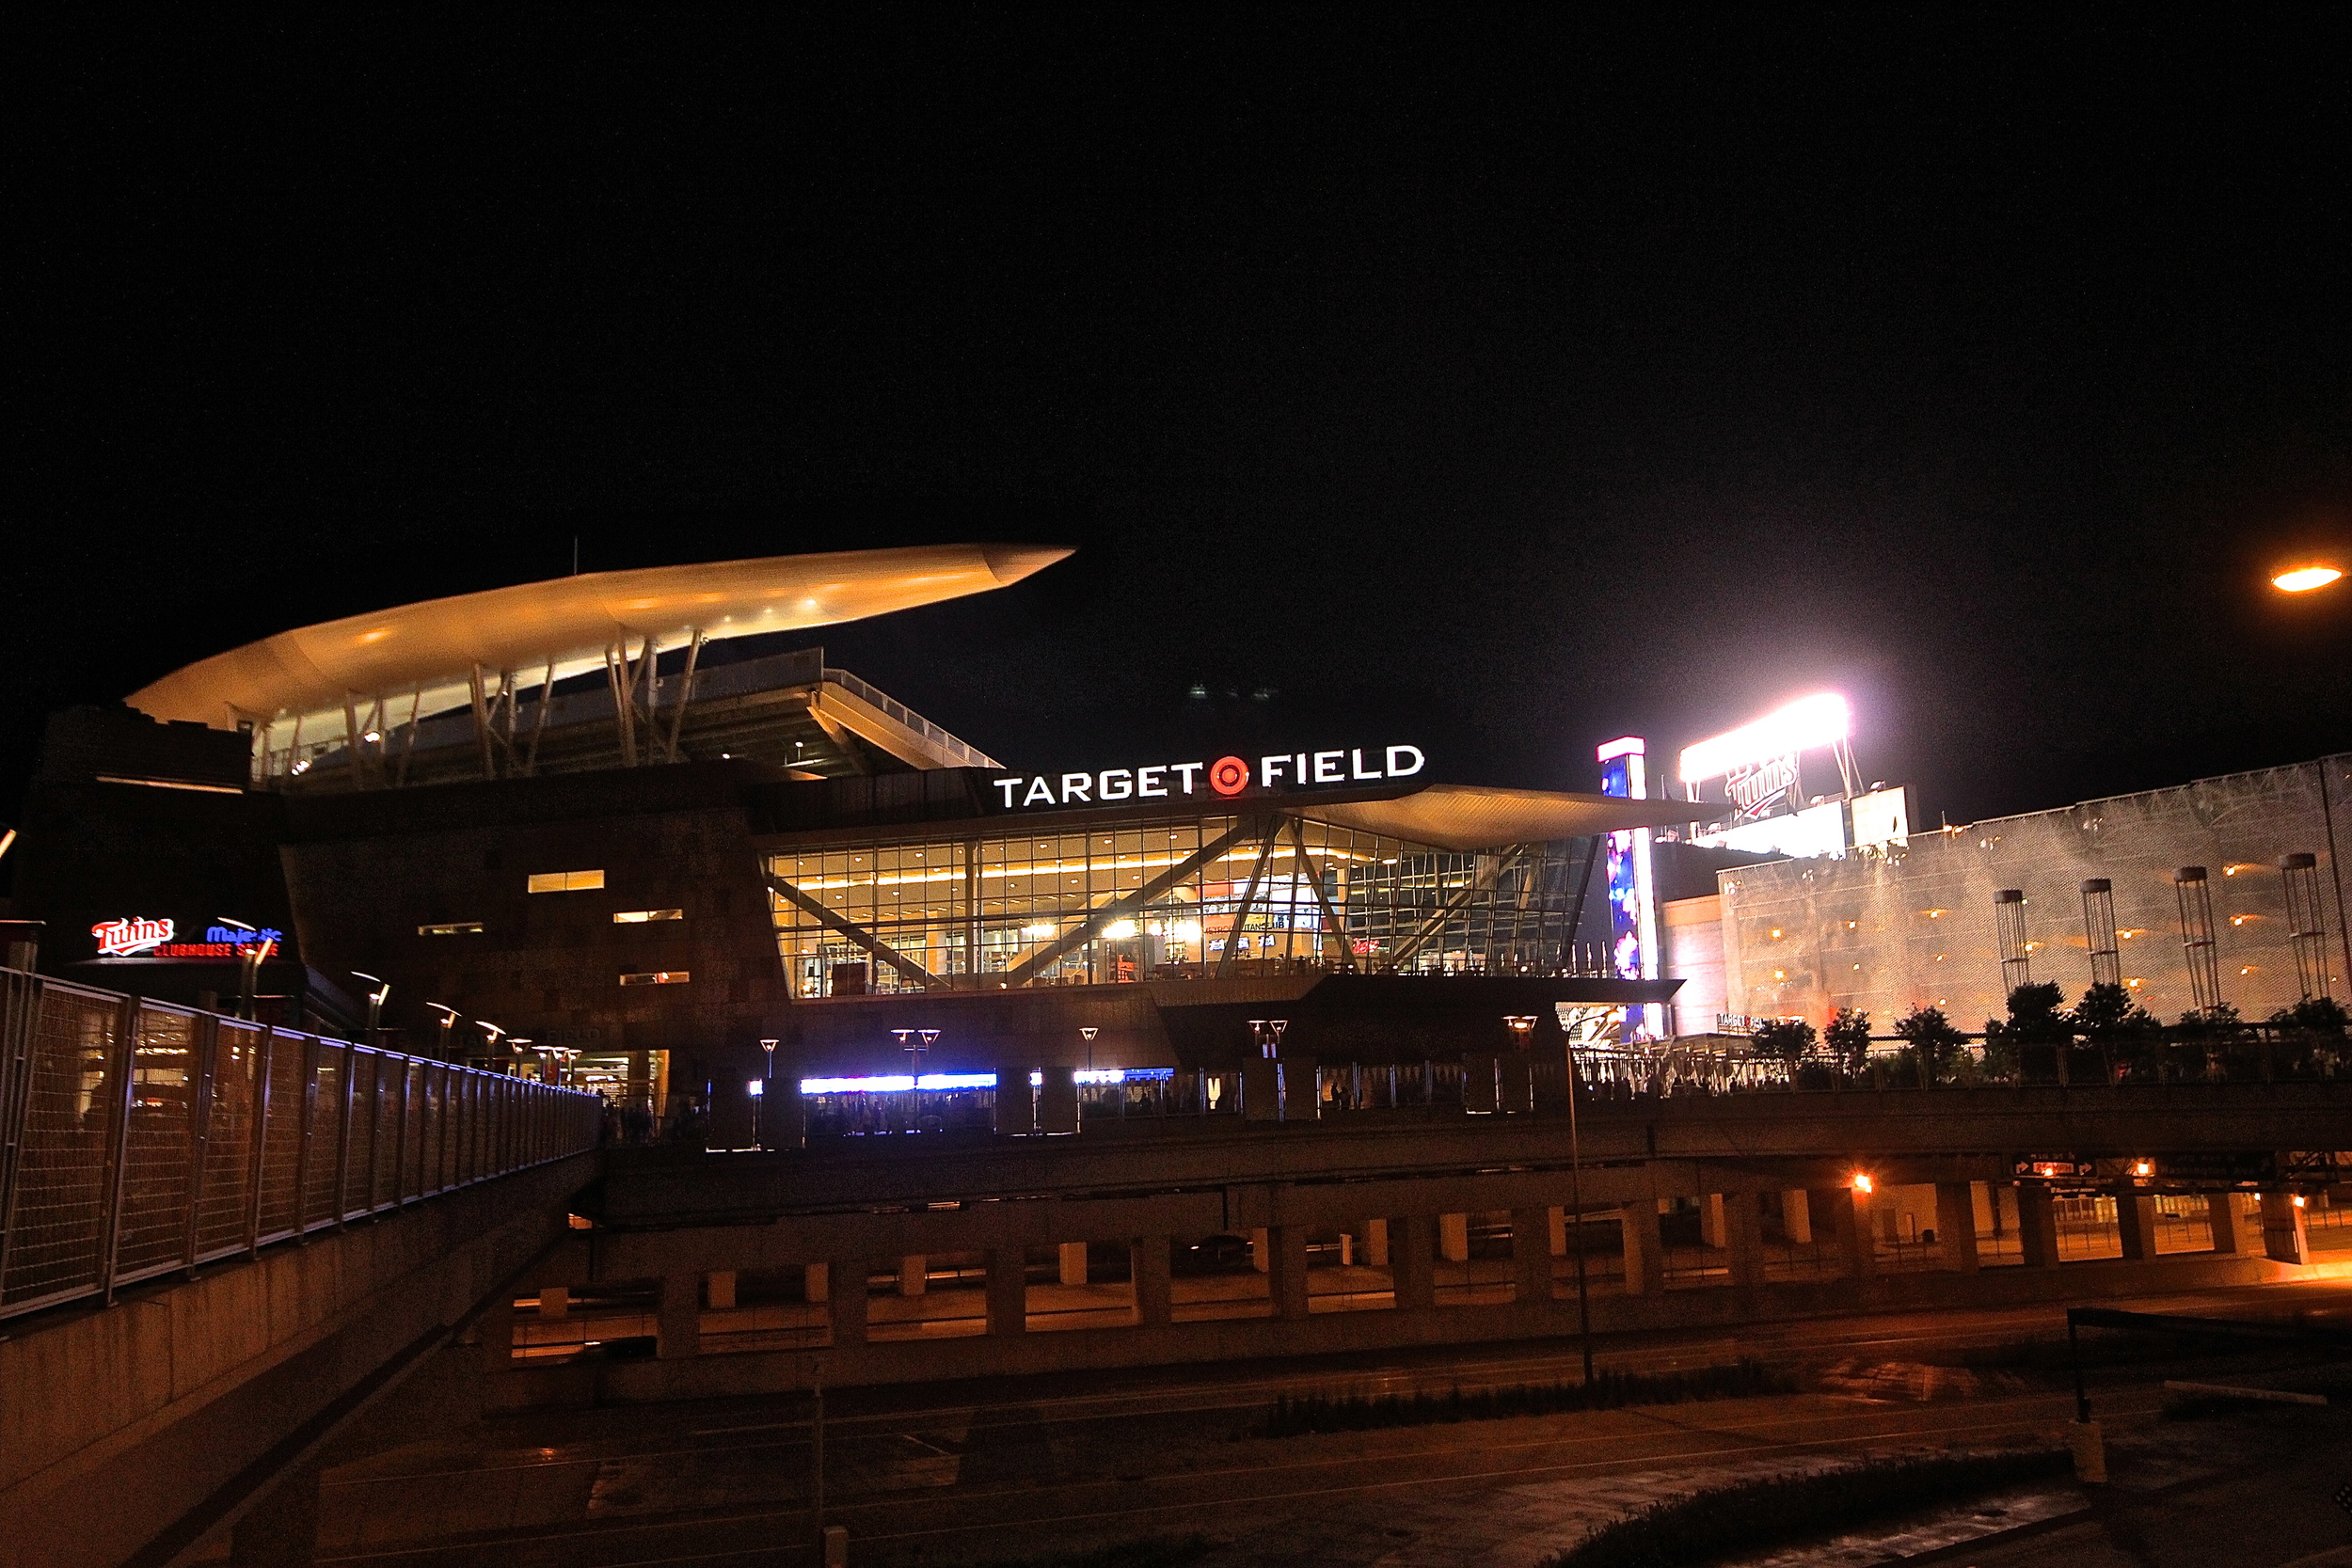 Good night Target Field